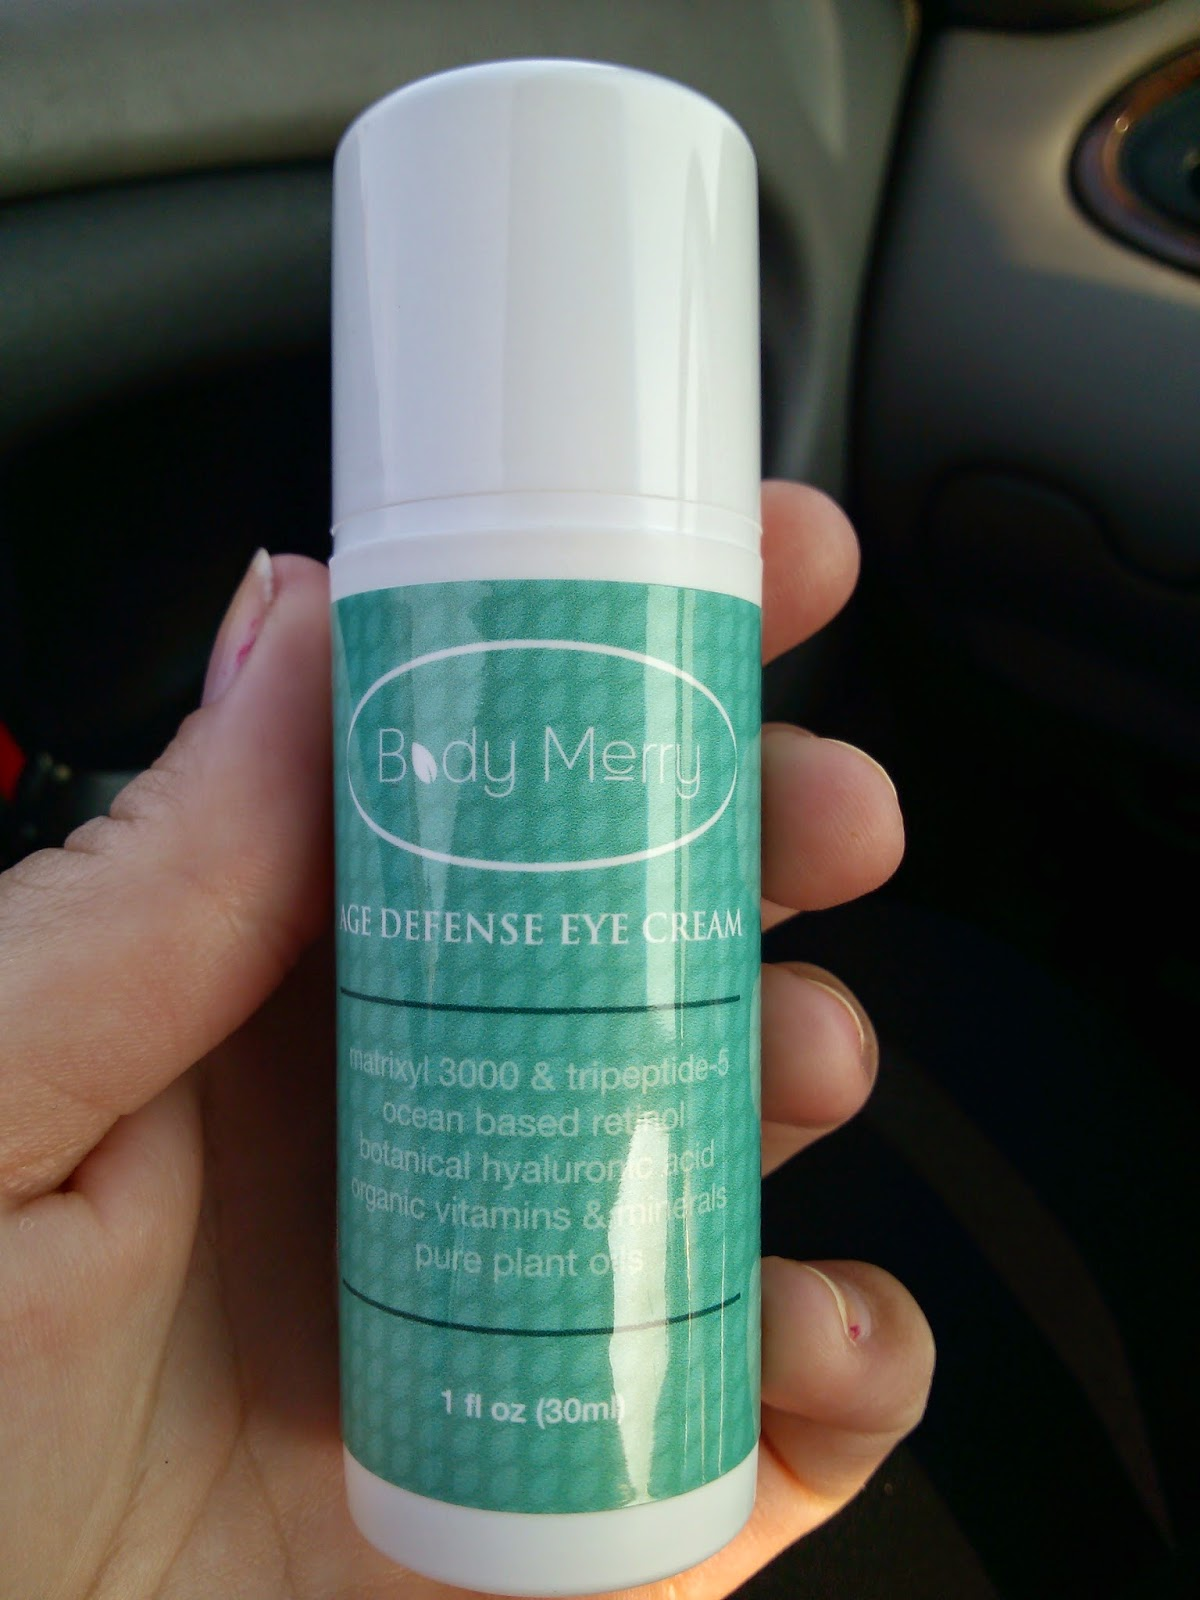 Body Merry Age Defense Eye Cream Review